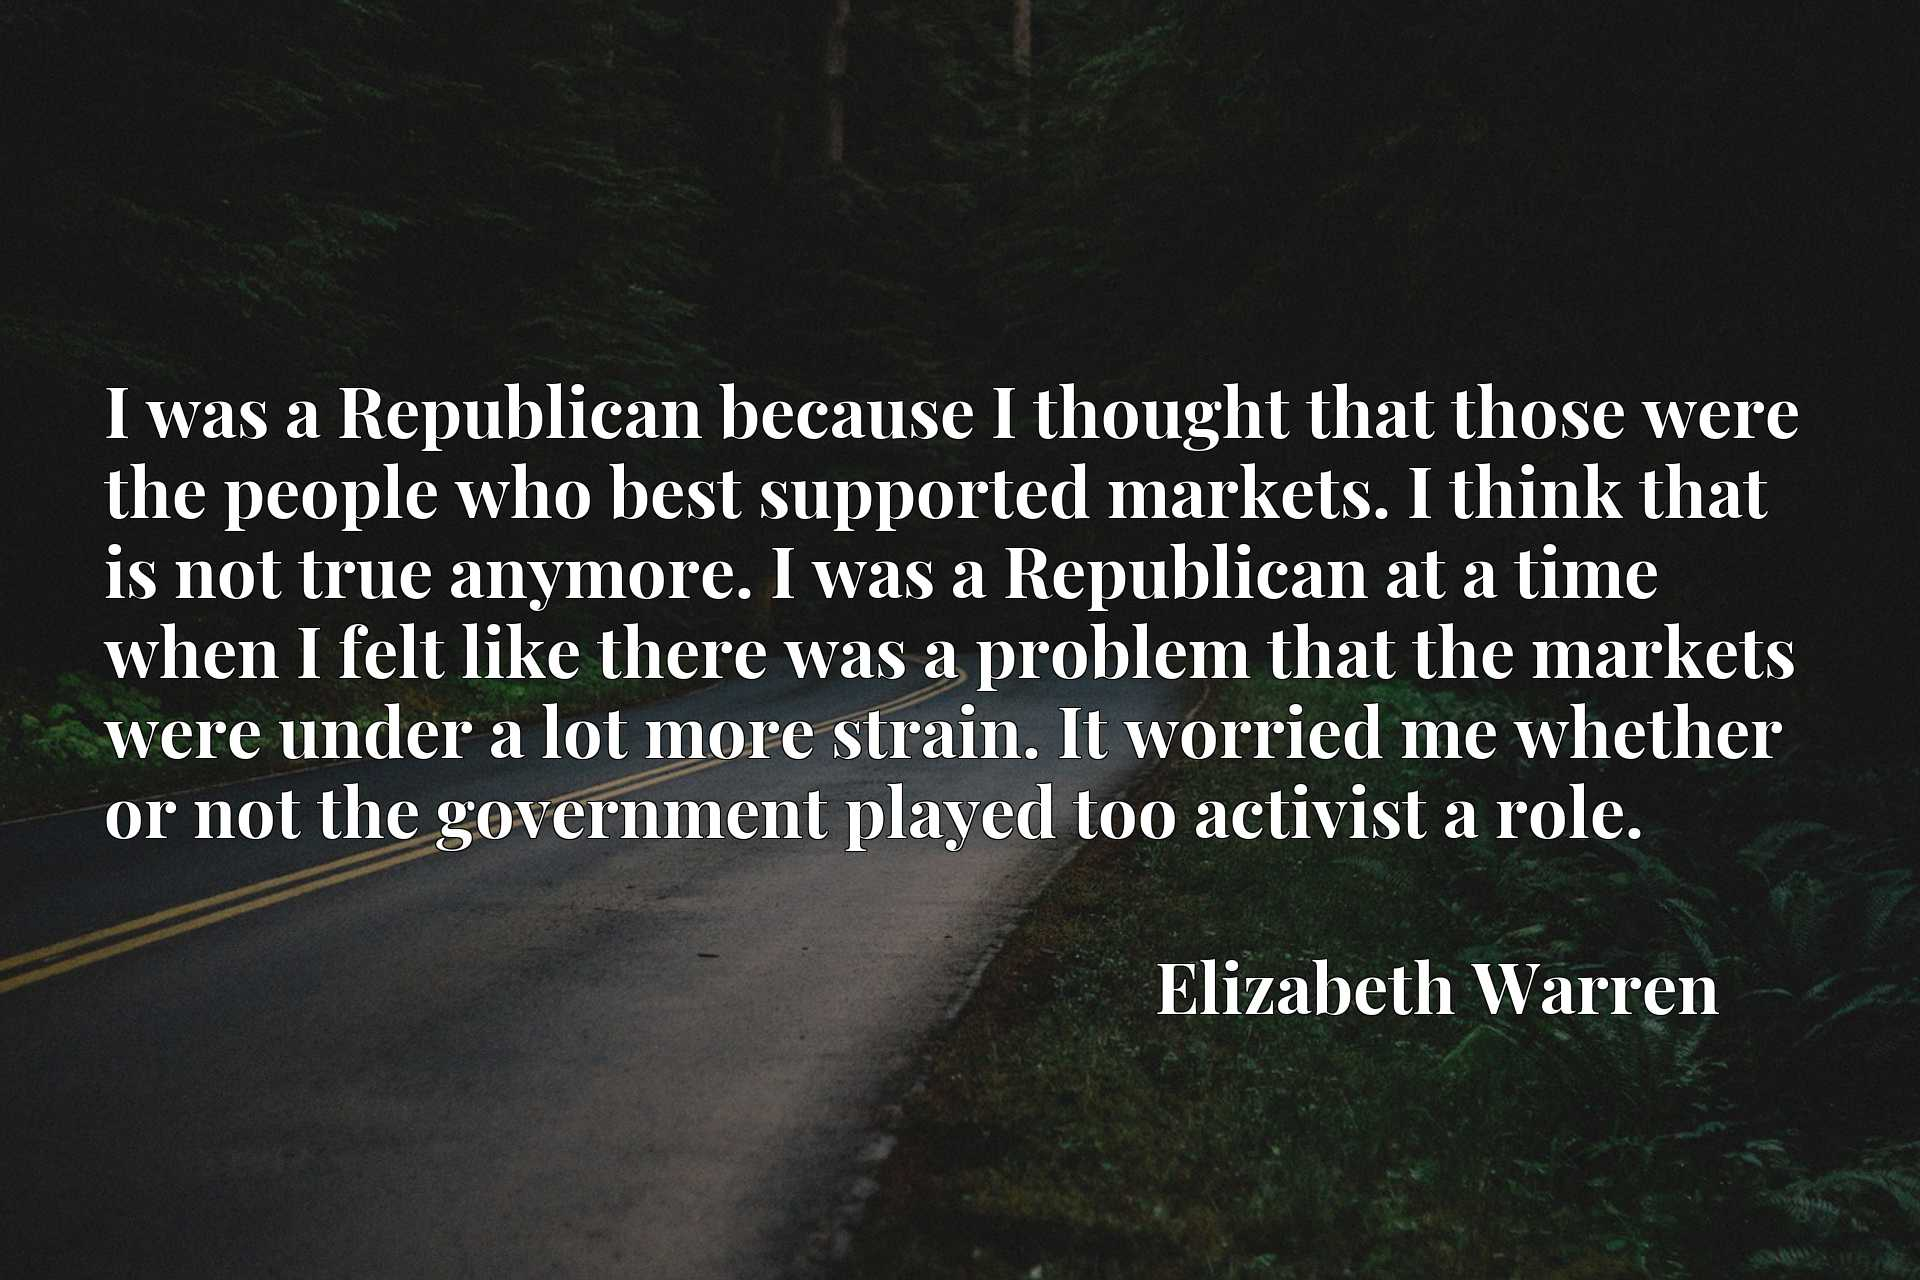 I was a Republican because I thought that those were the people who best supported markets. I think that is not true anymore. I was a Republican at a time when I felt like there was a problem that the markets were under a lot more strain. It worried me whether or not the government played too activist a role.